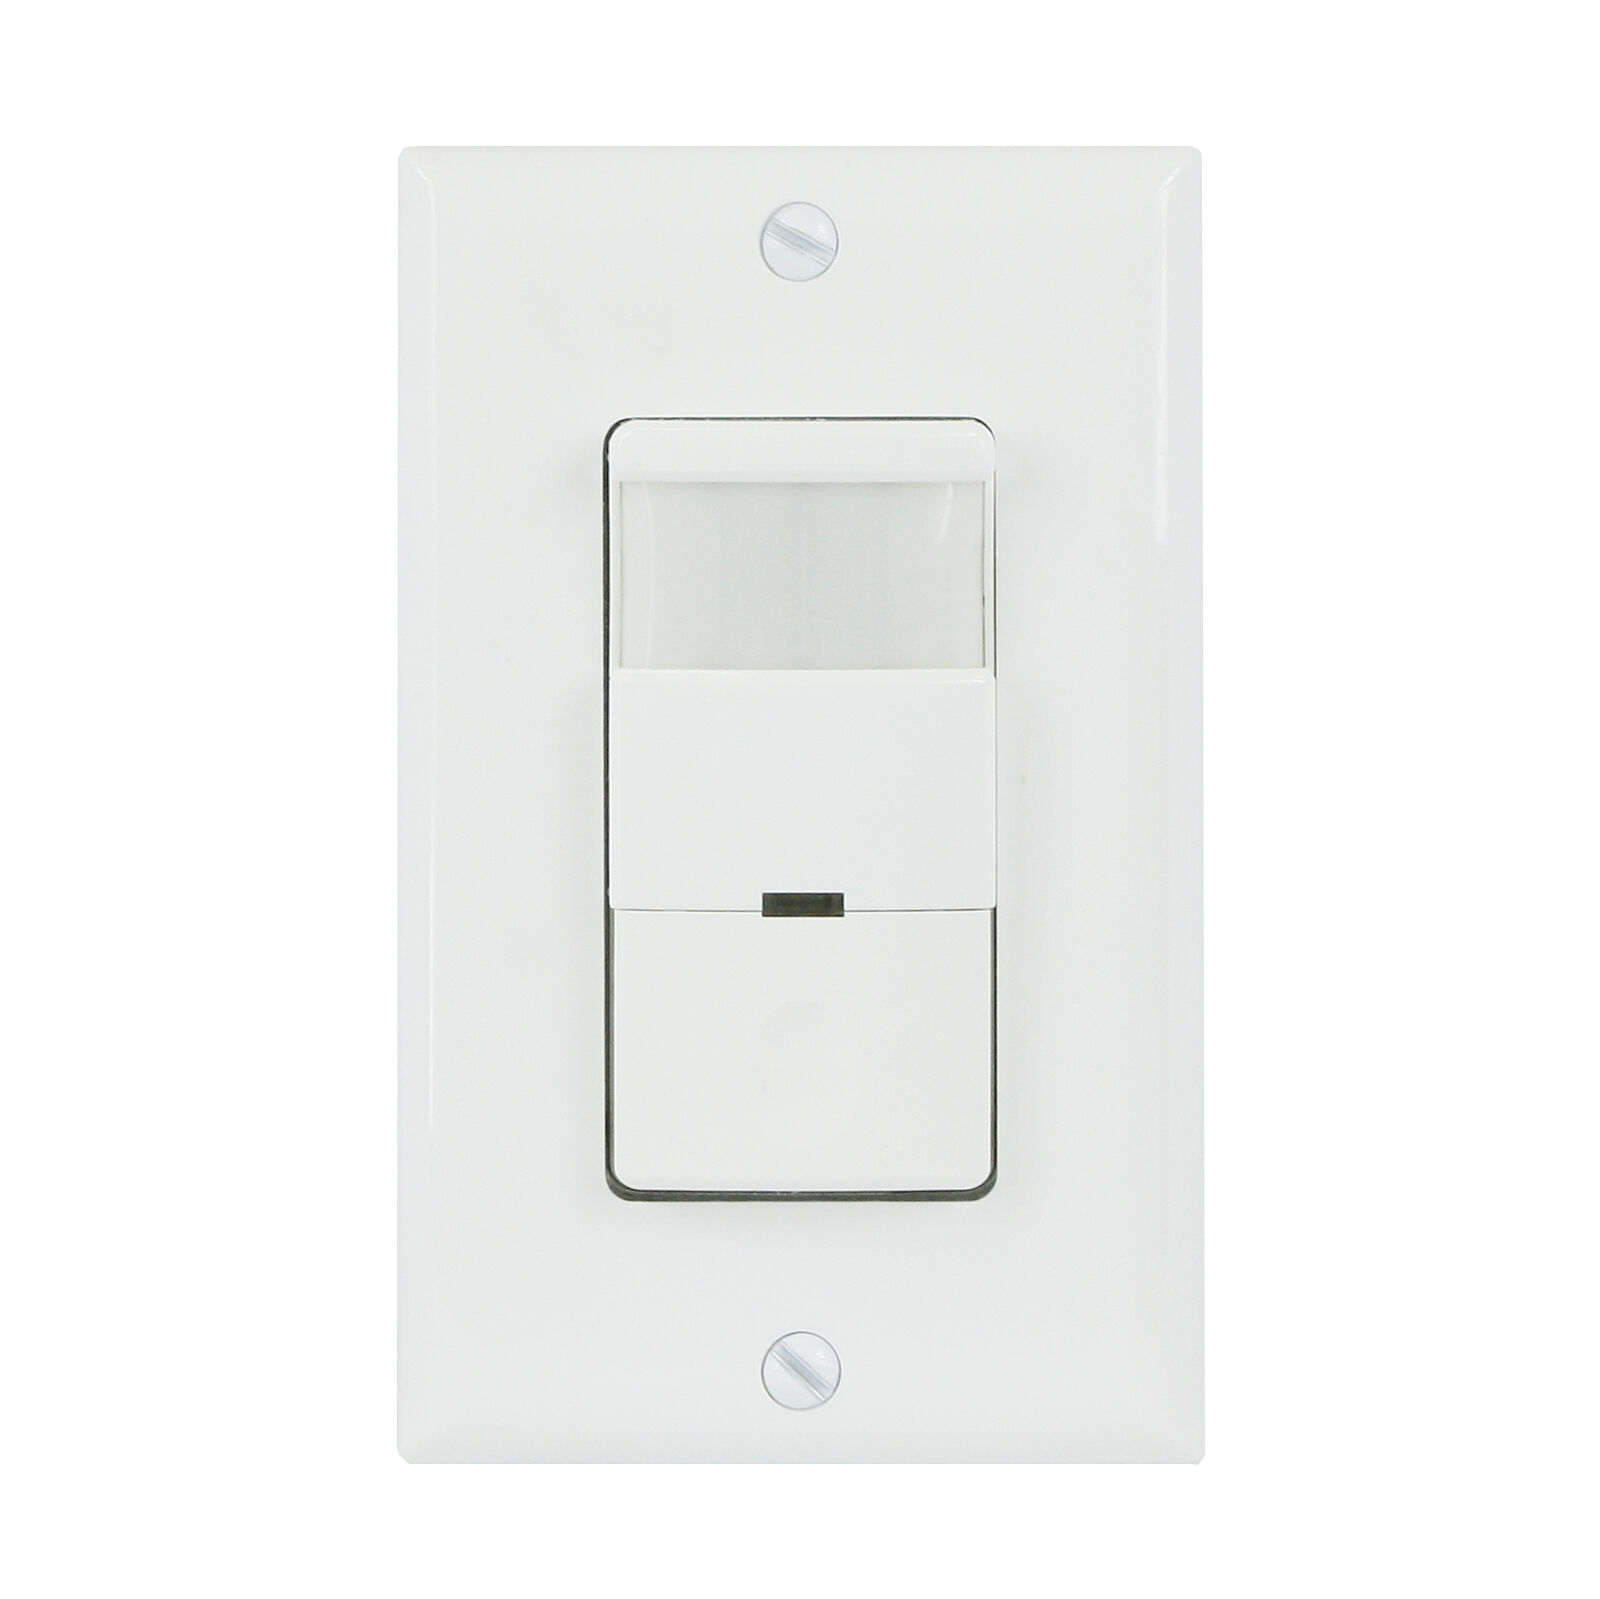 topgreener tdos5 in wall occupancy motion sensor light switch pir detector white. Black Bedroom Furniture Sets. Home Design Ideas